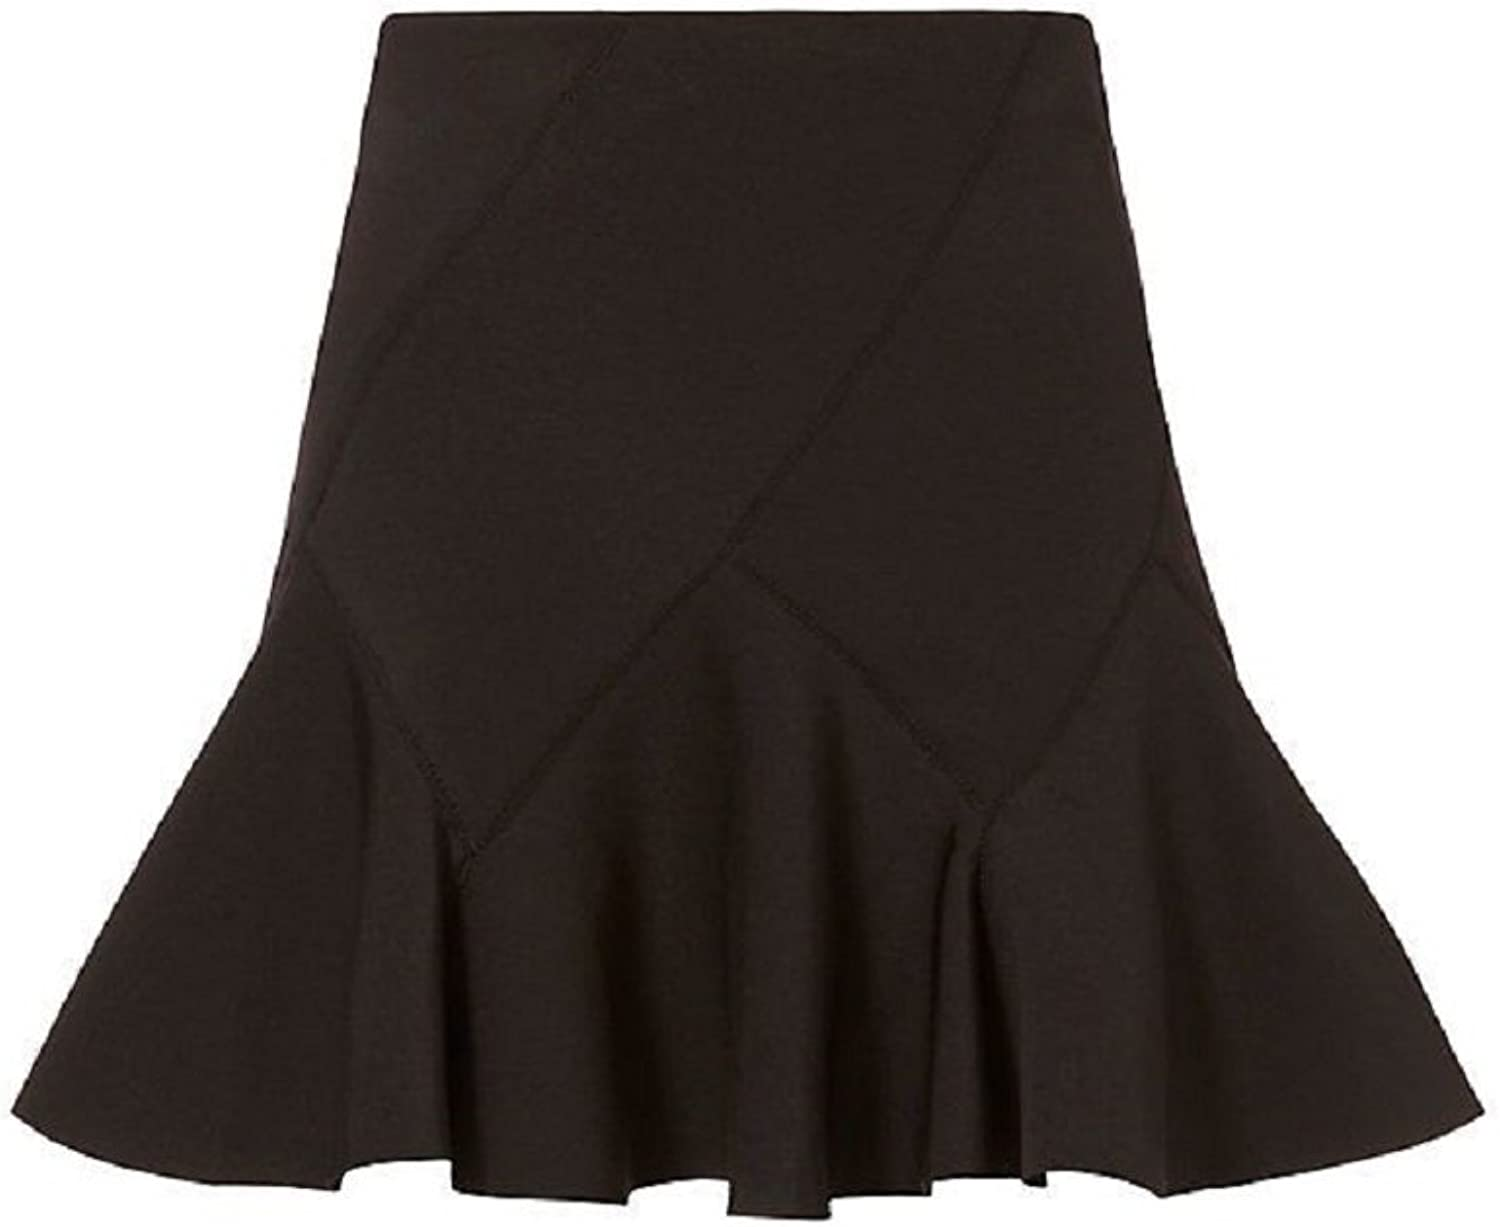 Derek Lam 10 Crosby Black Neoprene Skirt 8